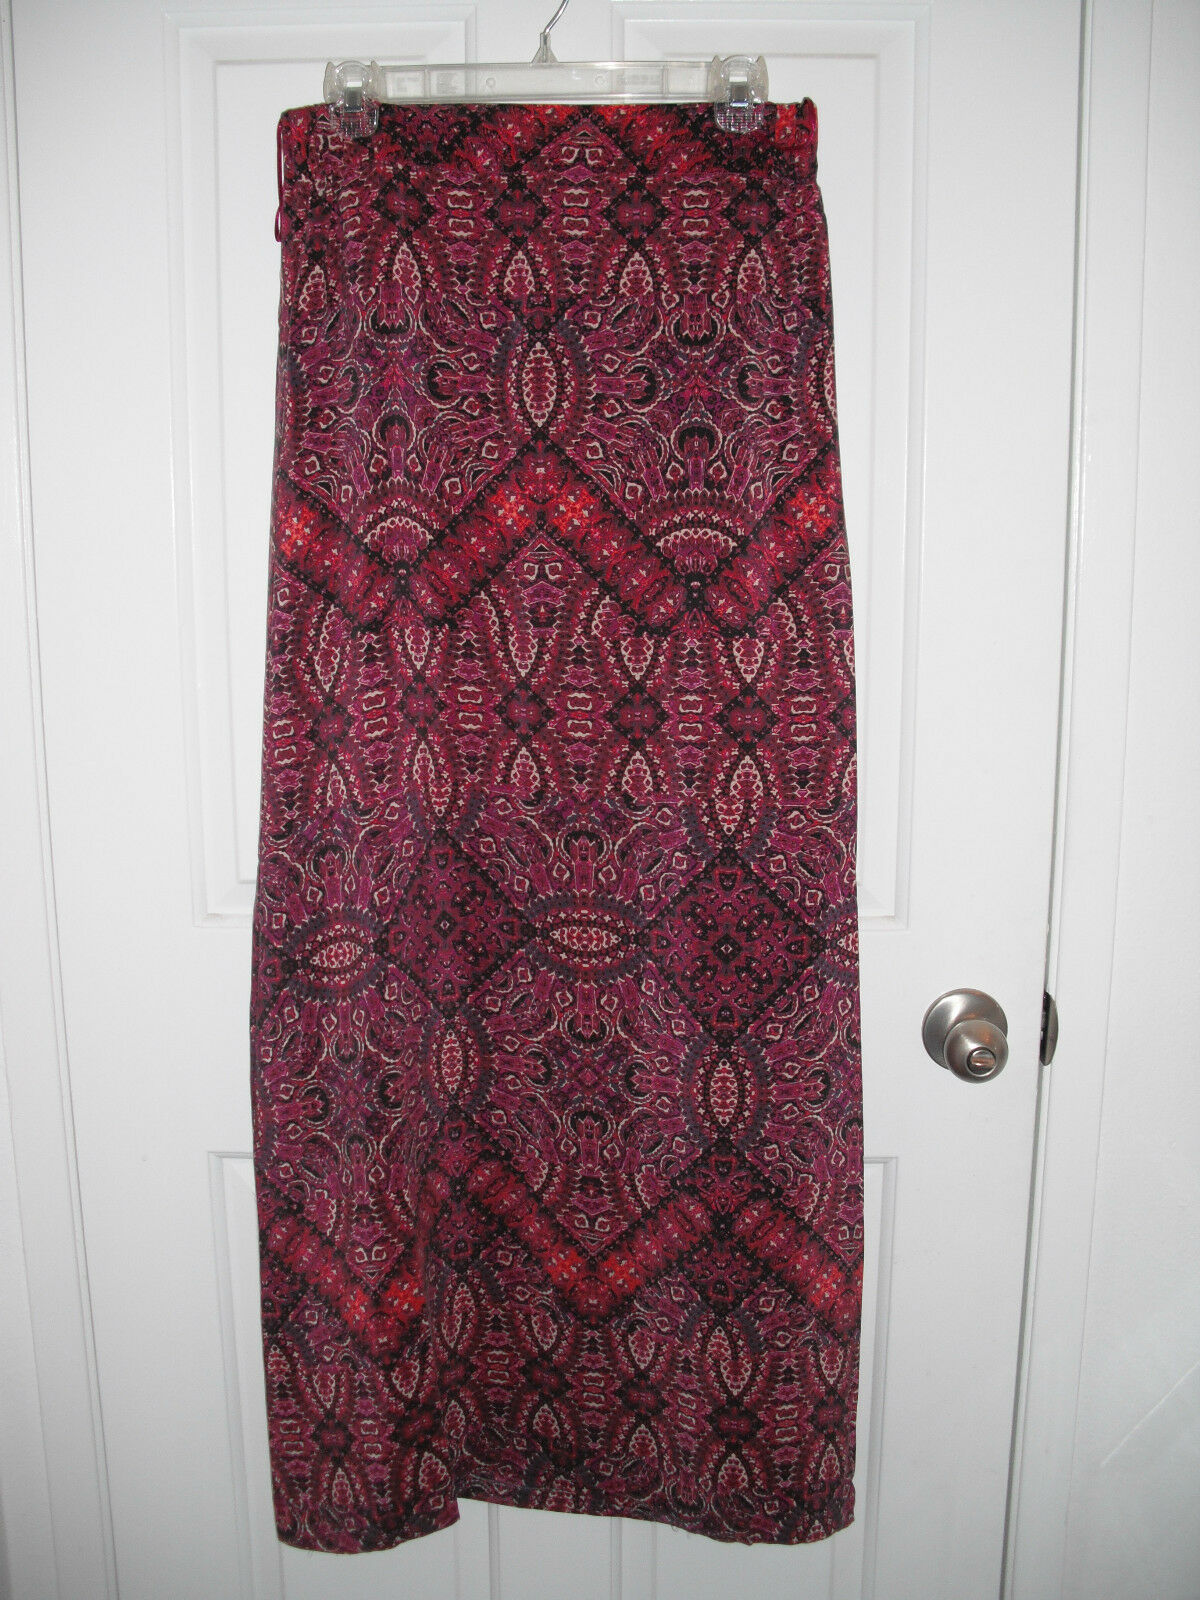 100% silk elasticized wasit maxi skirt multi-color red pink paisley 25 -28 Wx42